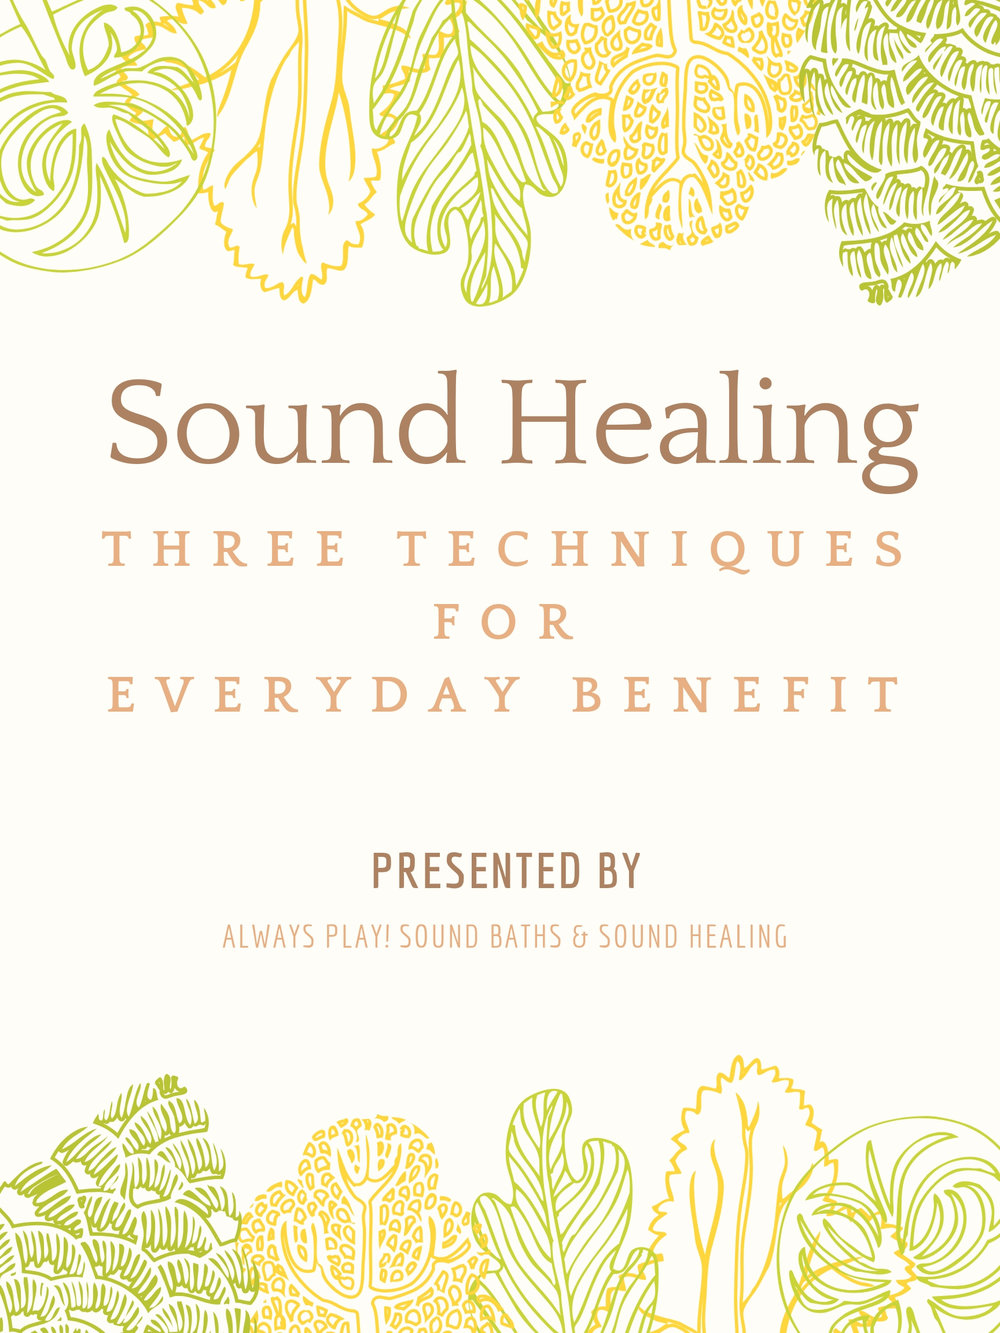 Download a complimentary guide to using Sound Healing Techniques for Everyday Benefit